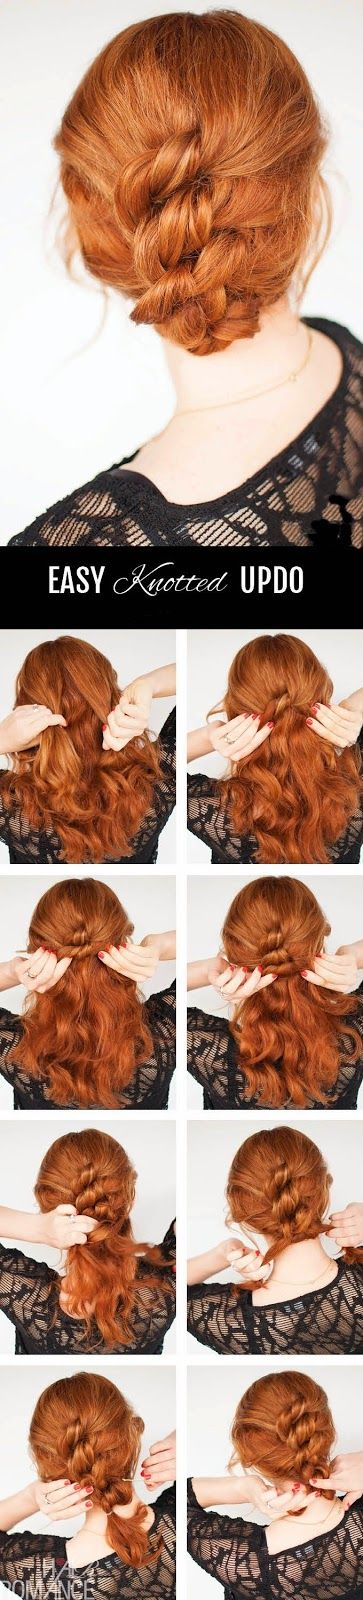 EASY KNOTTED HAIRSTYLE TUTORIAL: